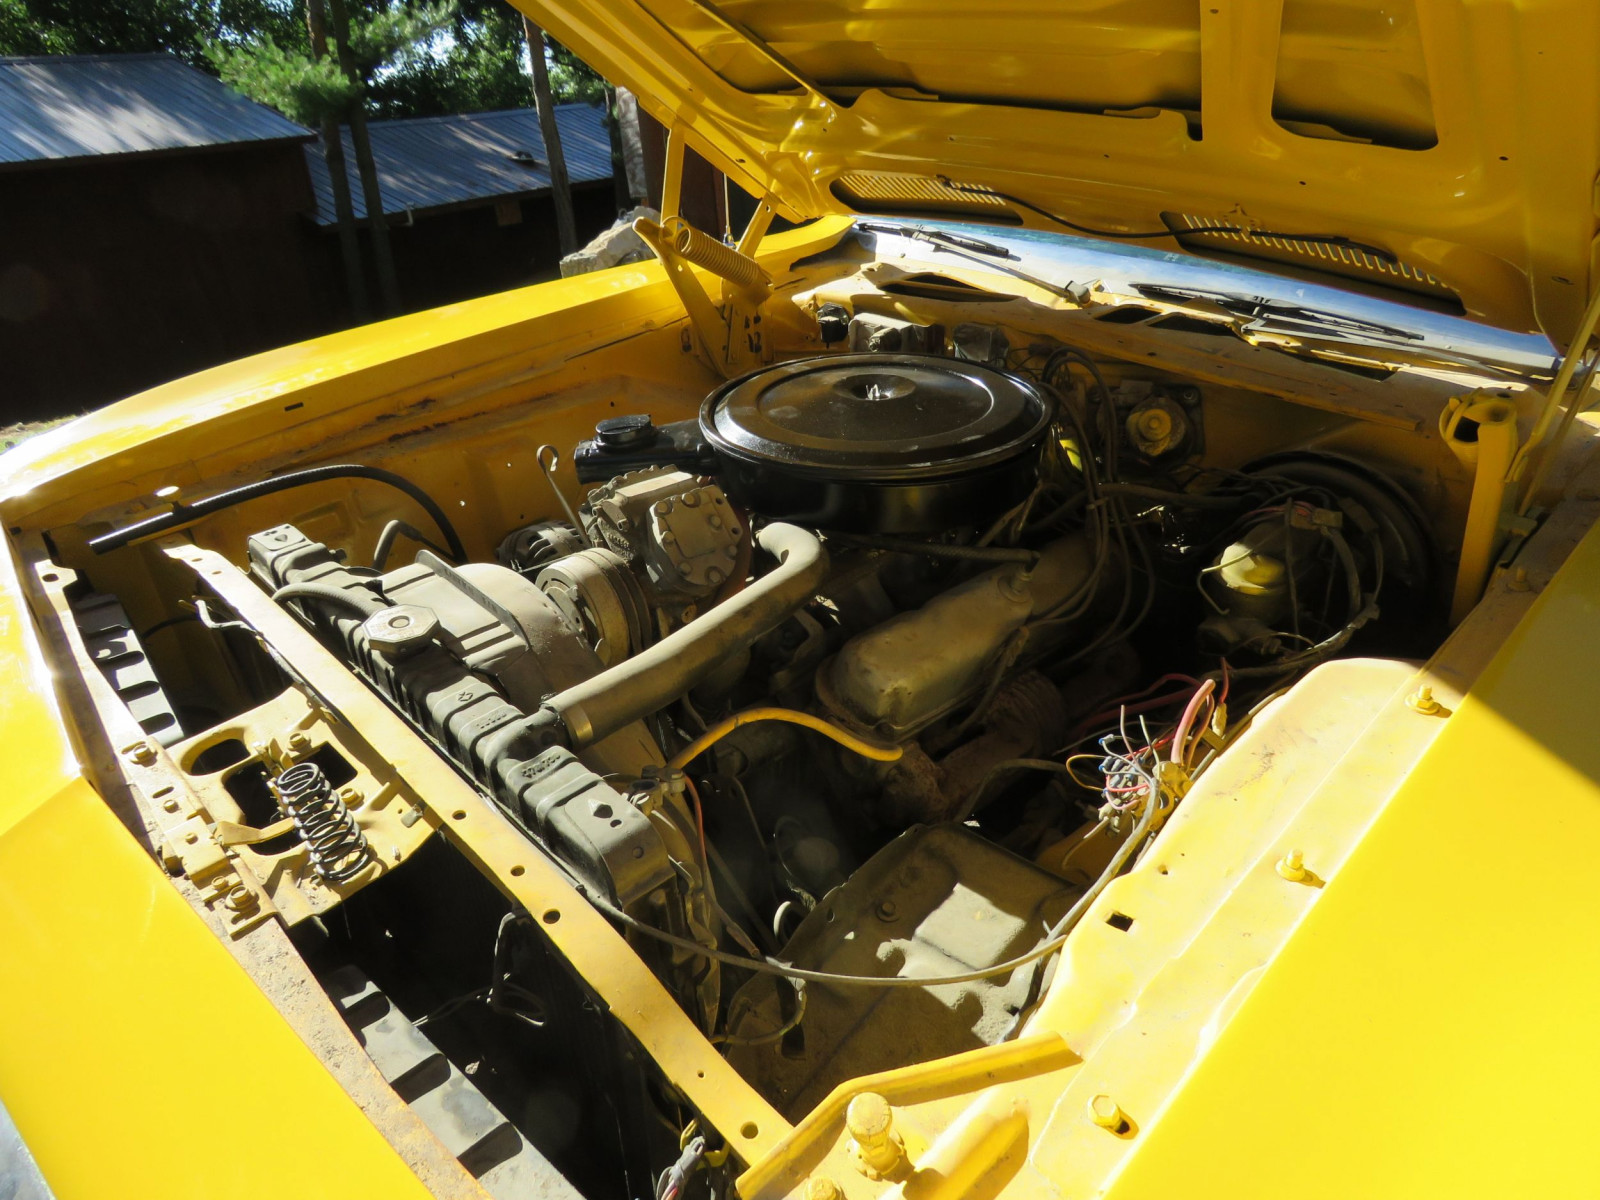 1973 Plymouth Barracuda 2dr HT - Image 11